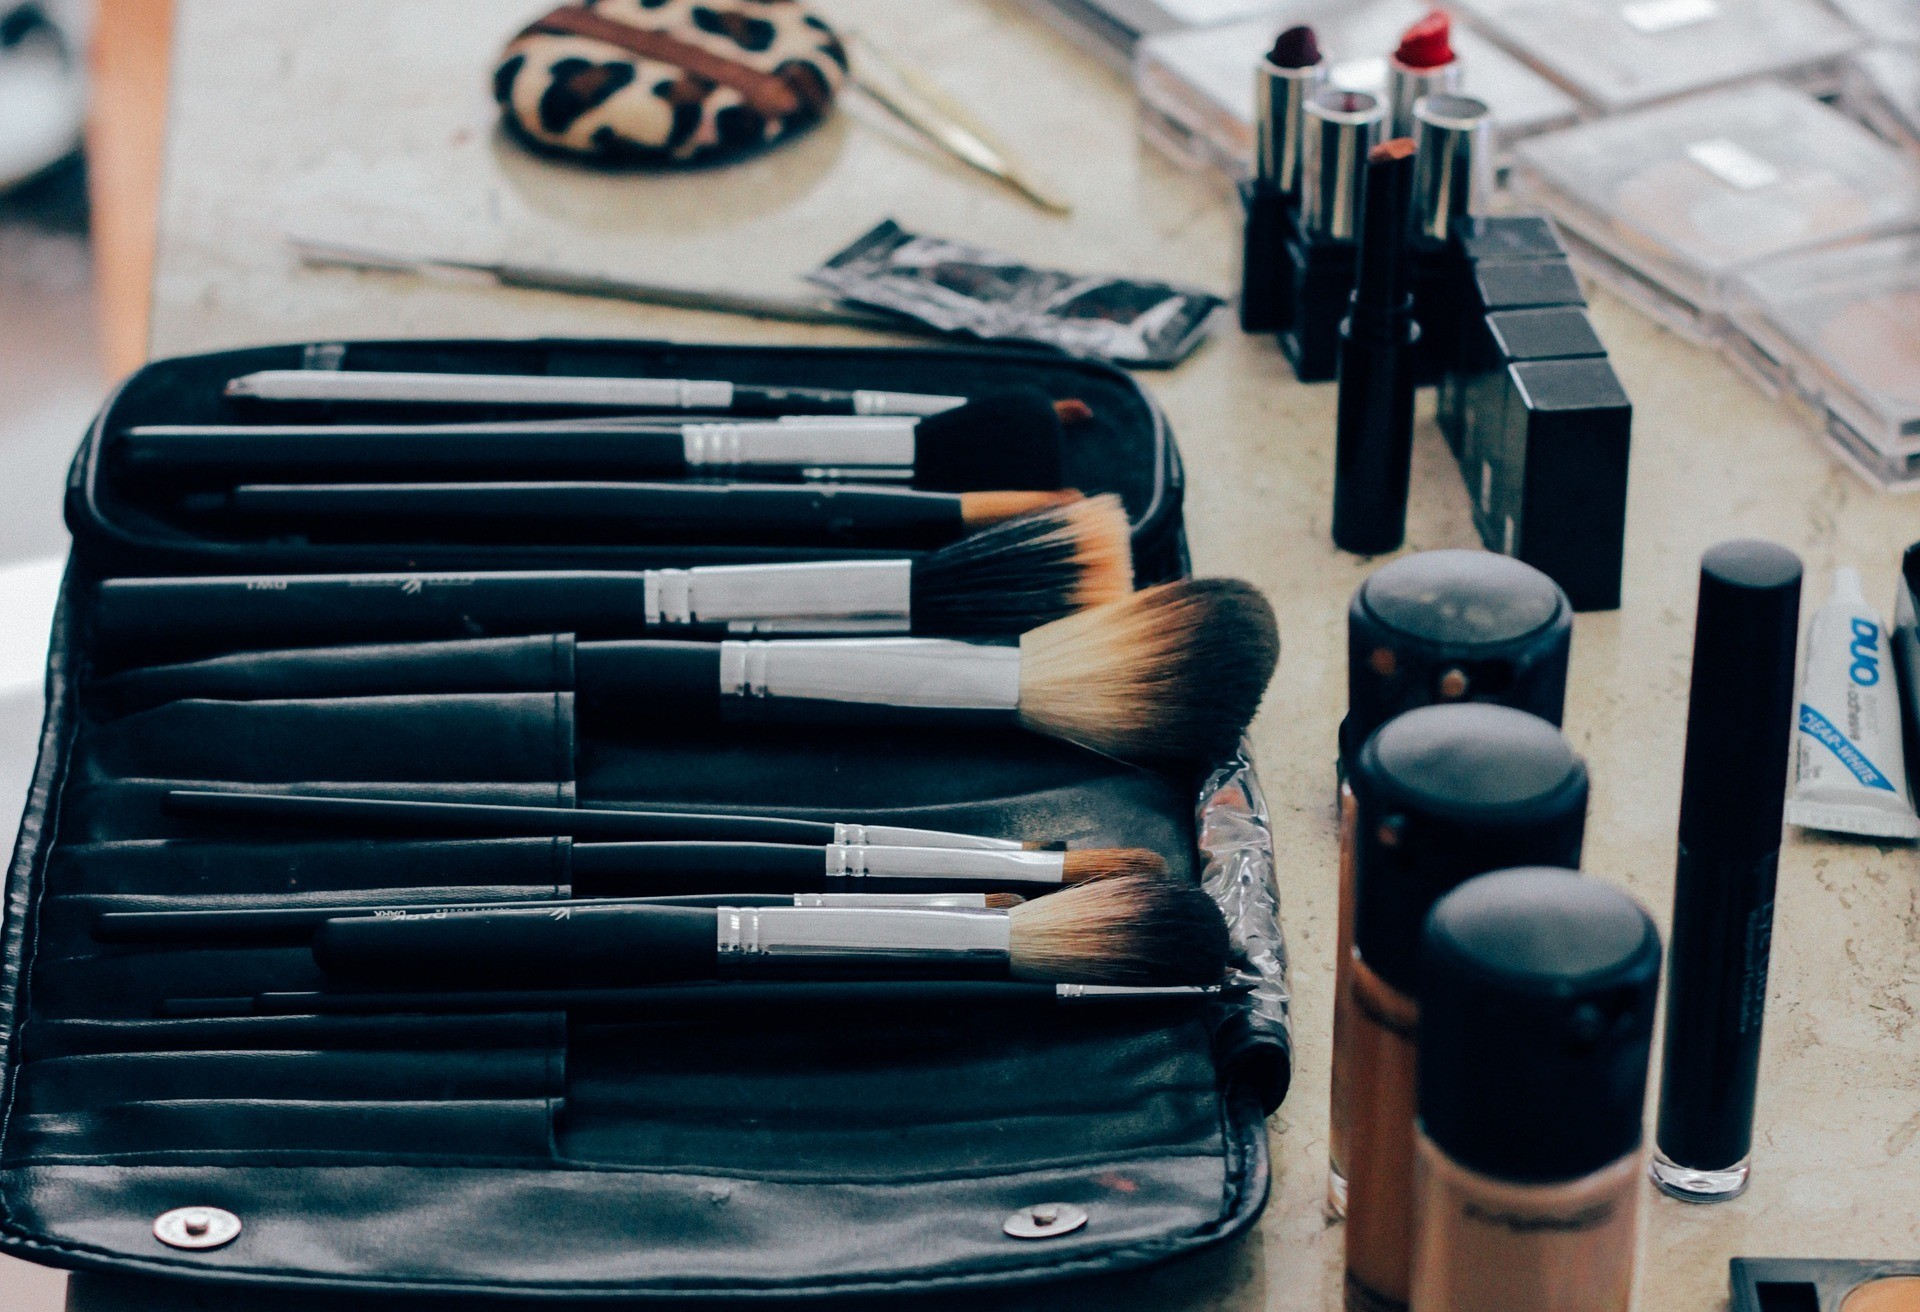 Is your makeup safe? – Harmful ingredients in beauty products